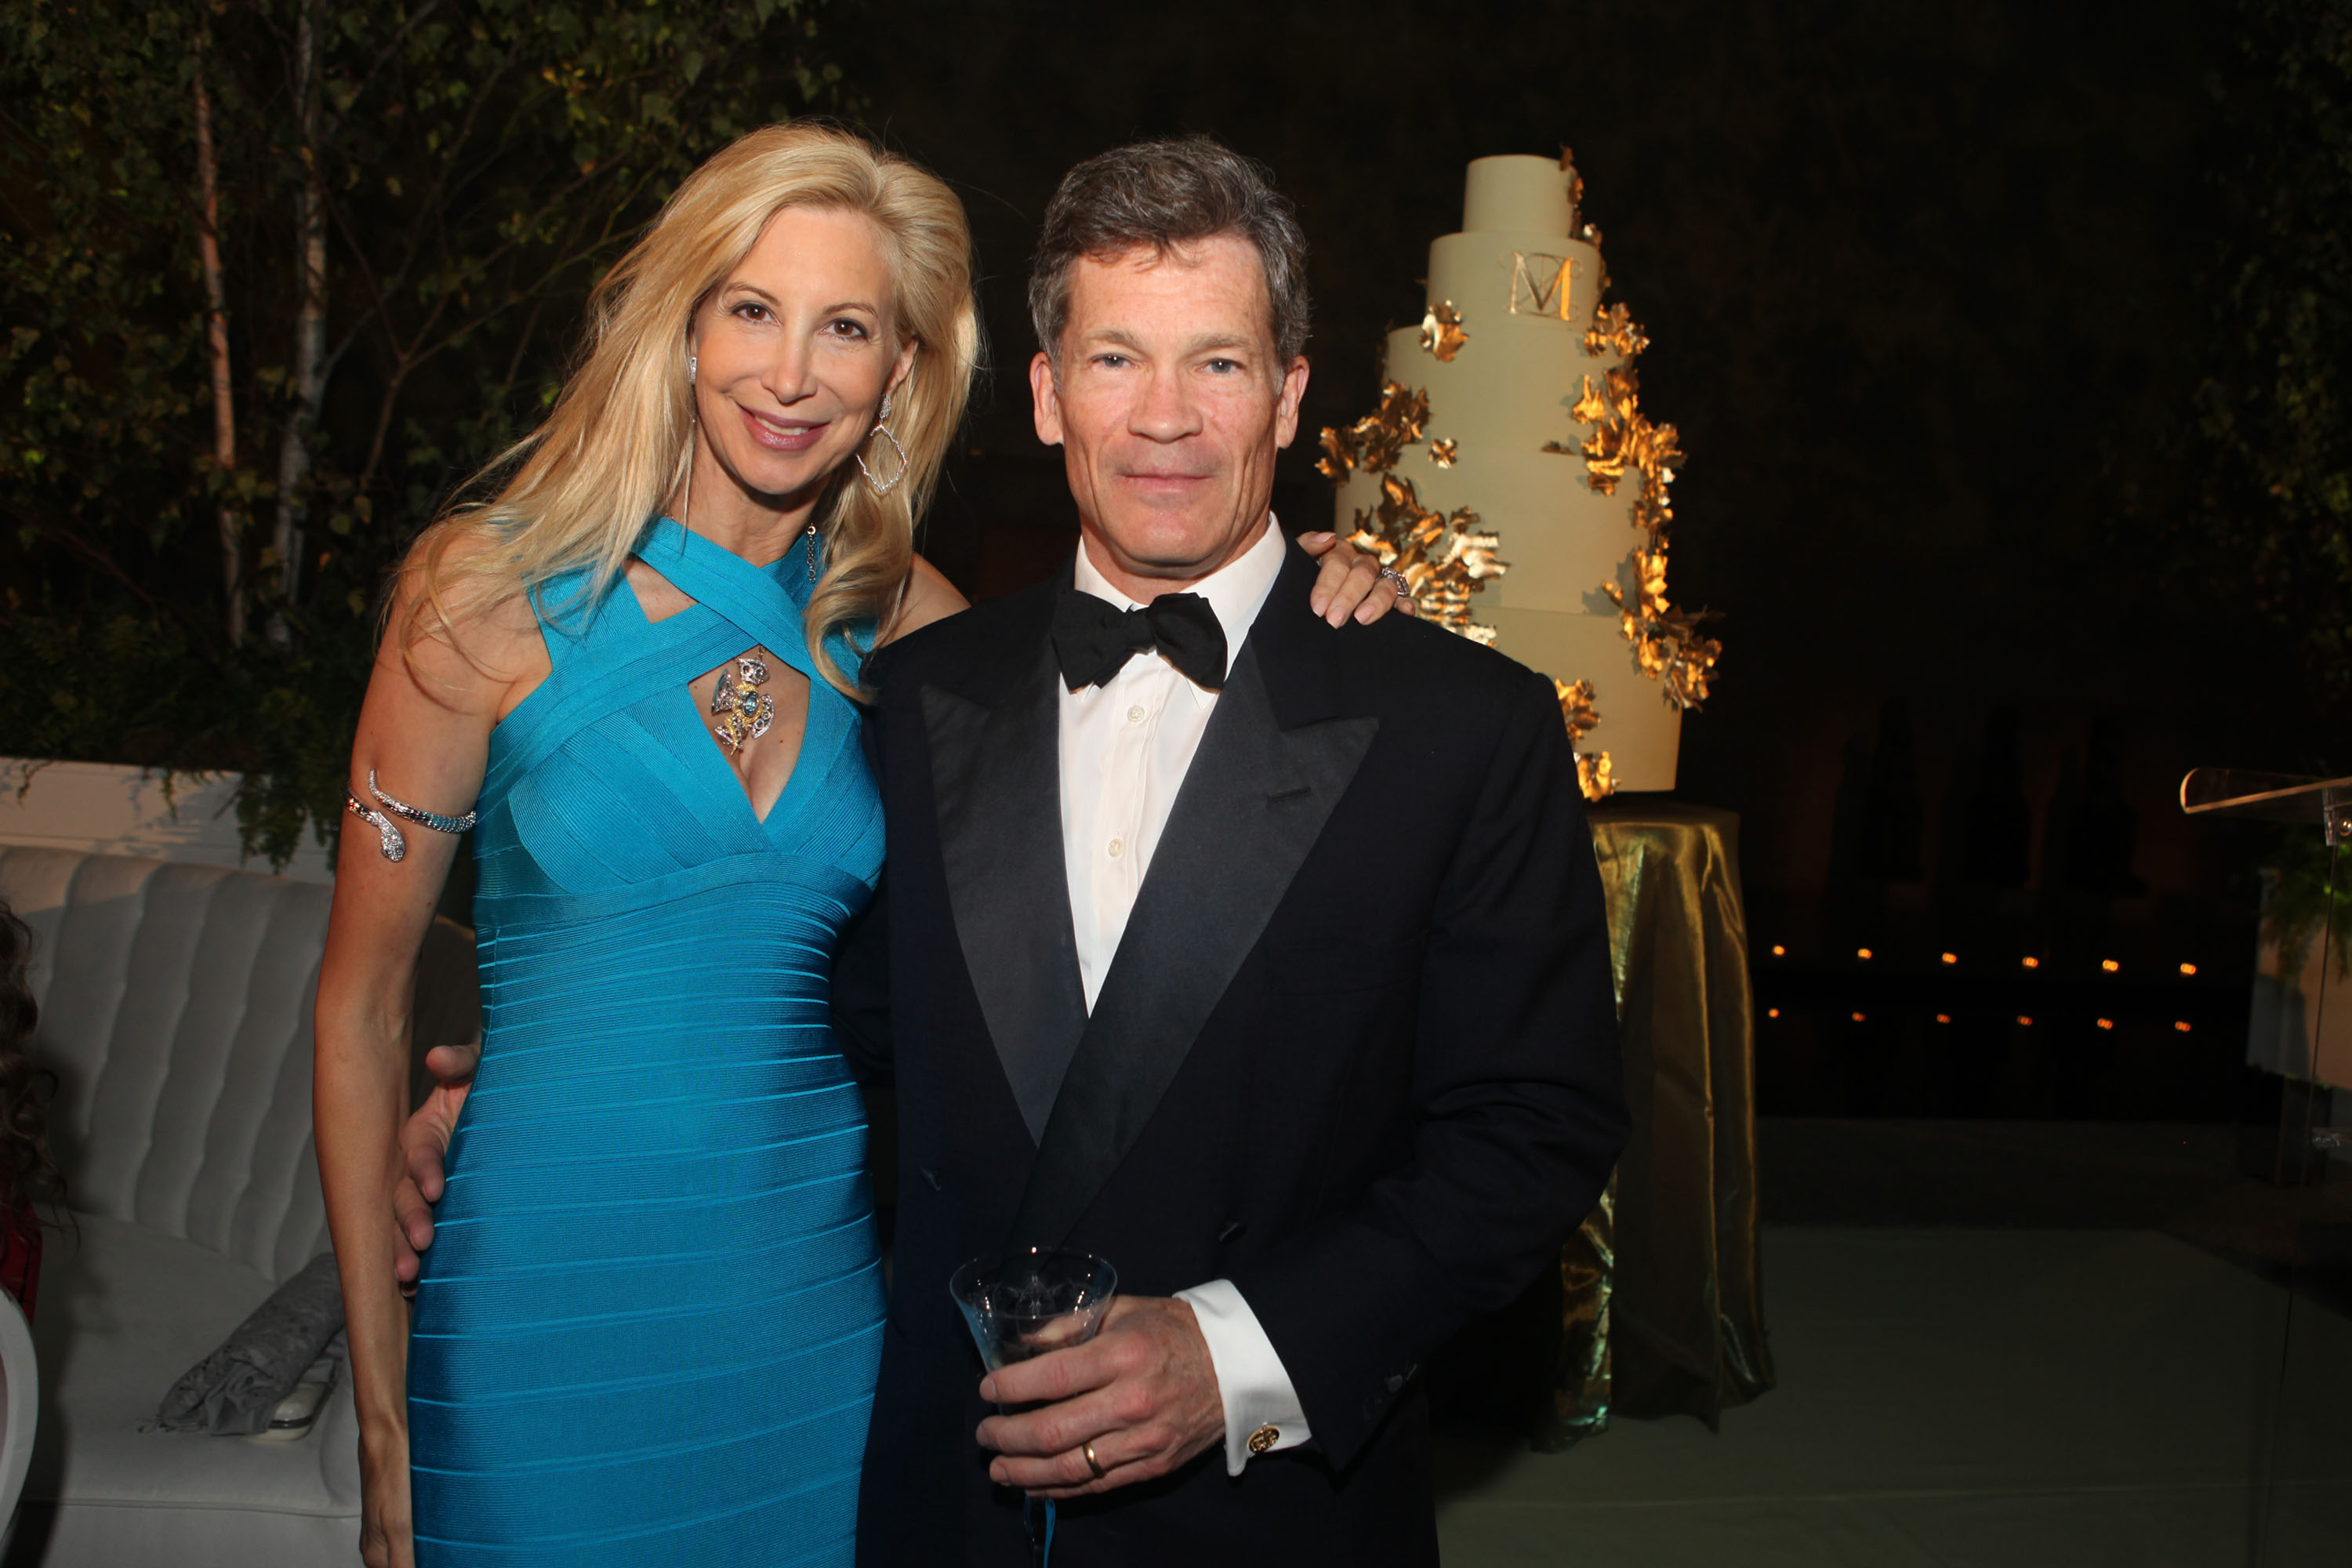 Celebration For The Fifth Avenue Facade of the Metropolitan Museum of Art